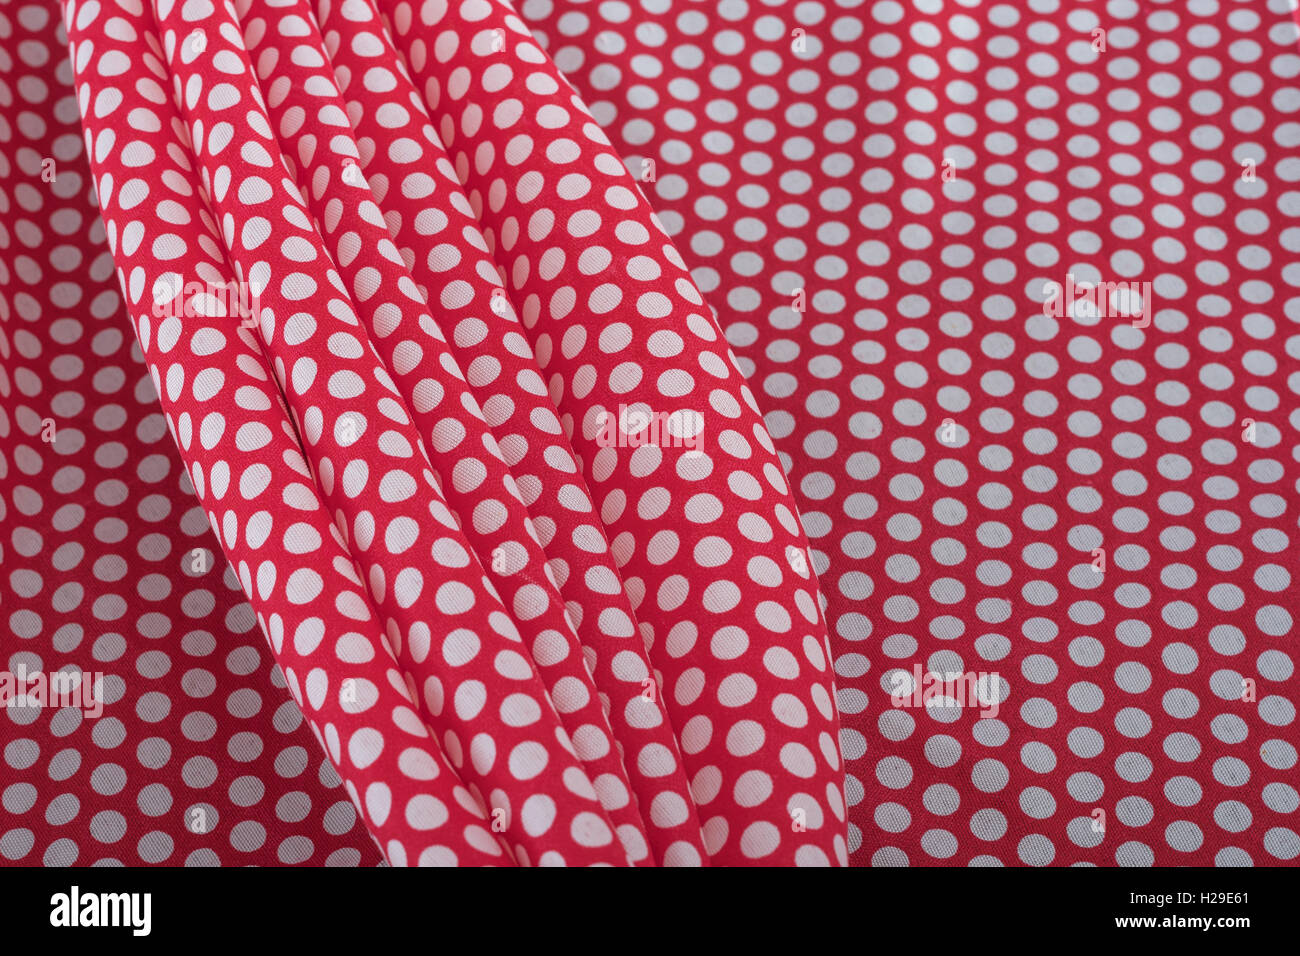 Abstract red-white polka dot cotton material. Concept 'International Dot Day' and perhaps a dotty personality, - Stock Image